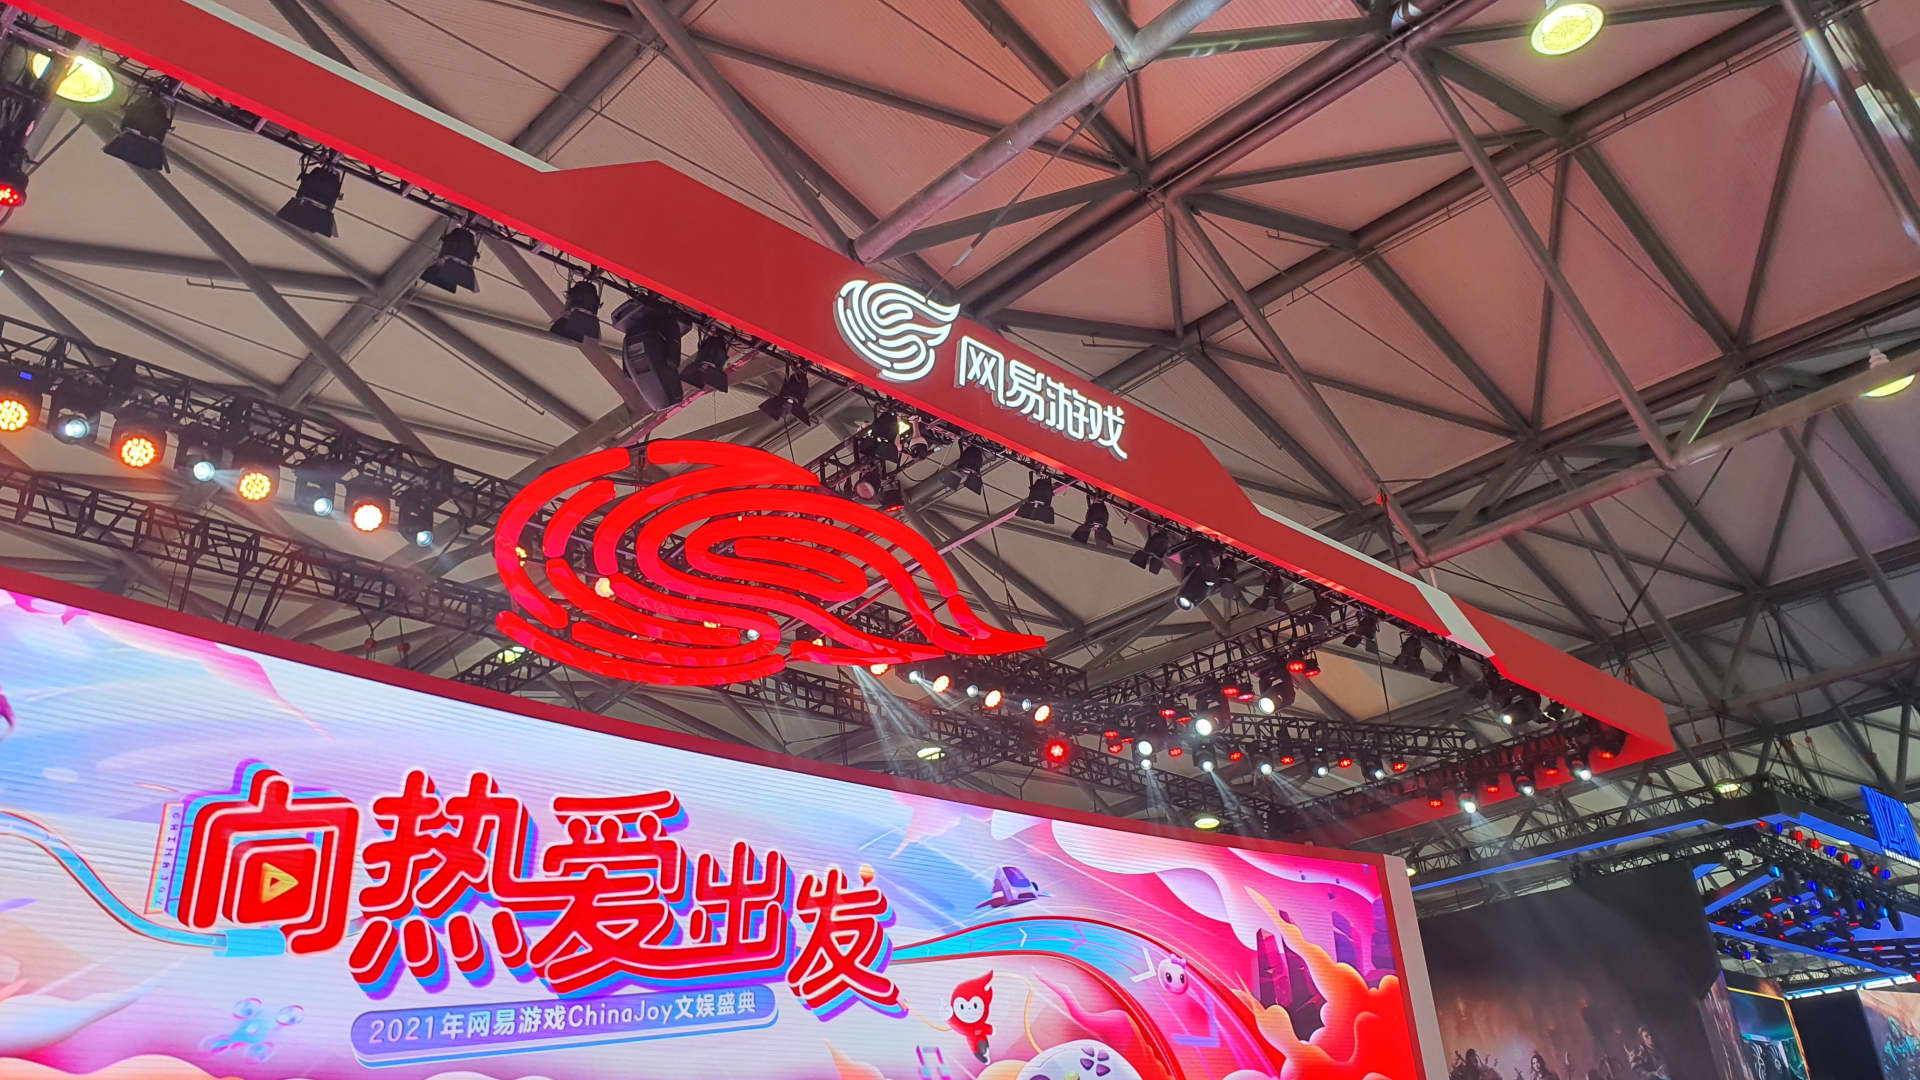 The NetEase Games booth at the China Joy conference in Shanghai on July 30, 2021.